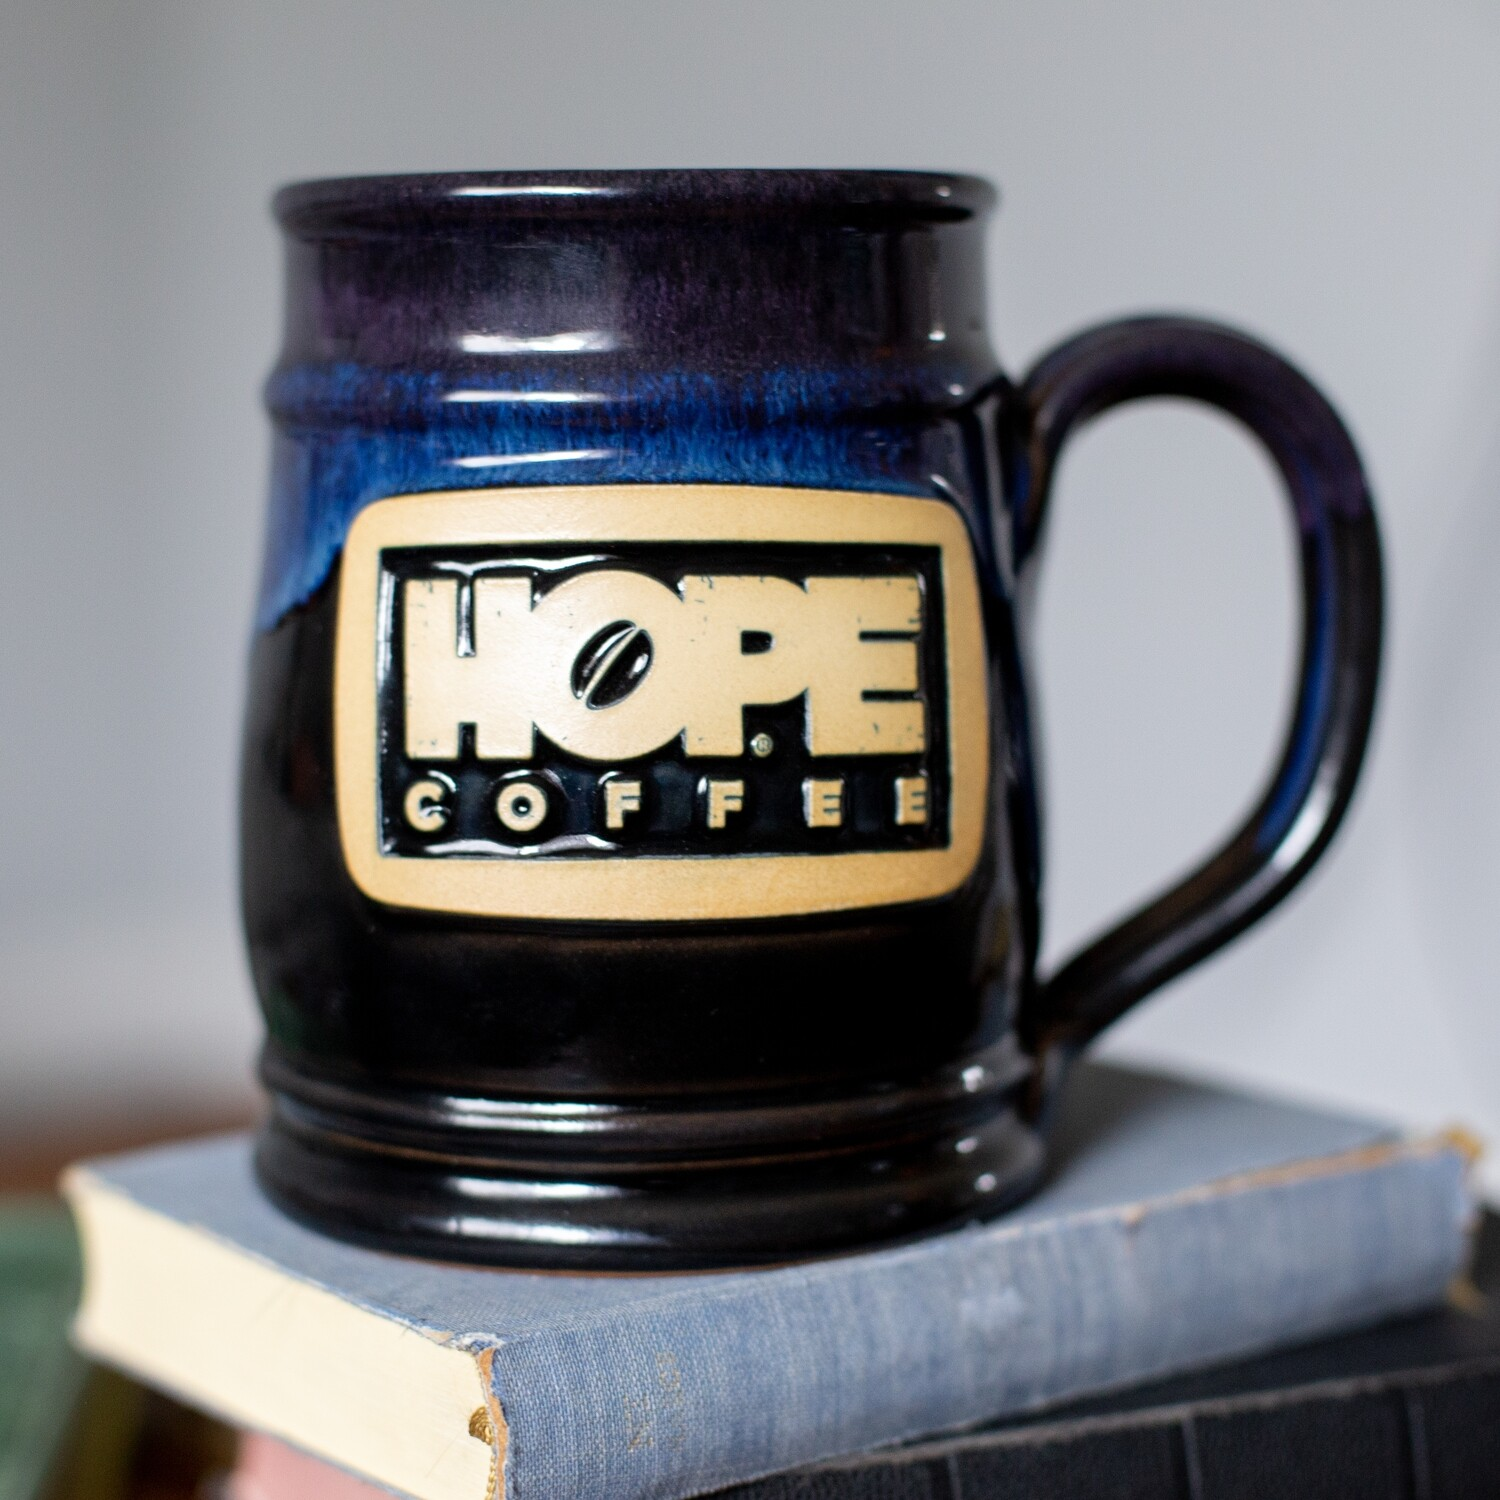 HOPE Coffee 23oz Tankard Mug - Galaxy Glaze